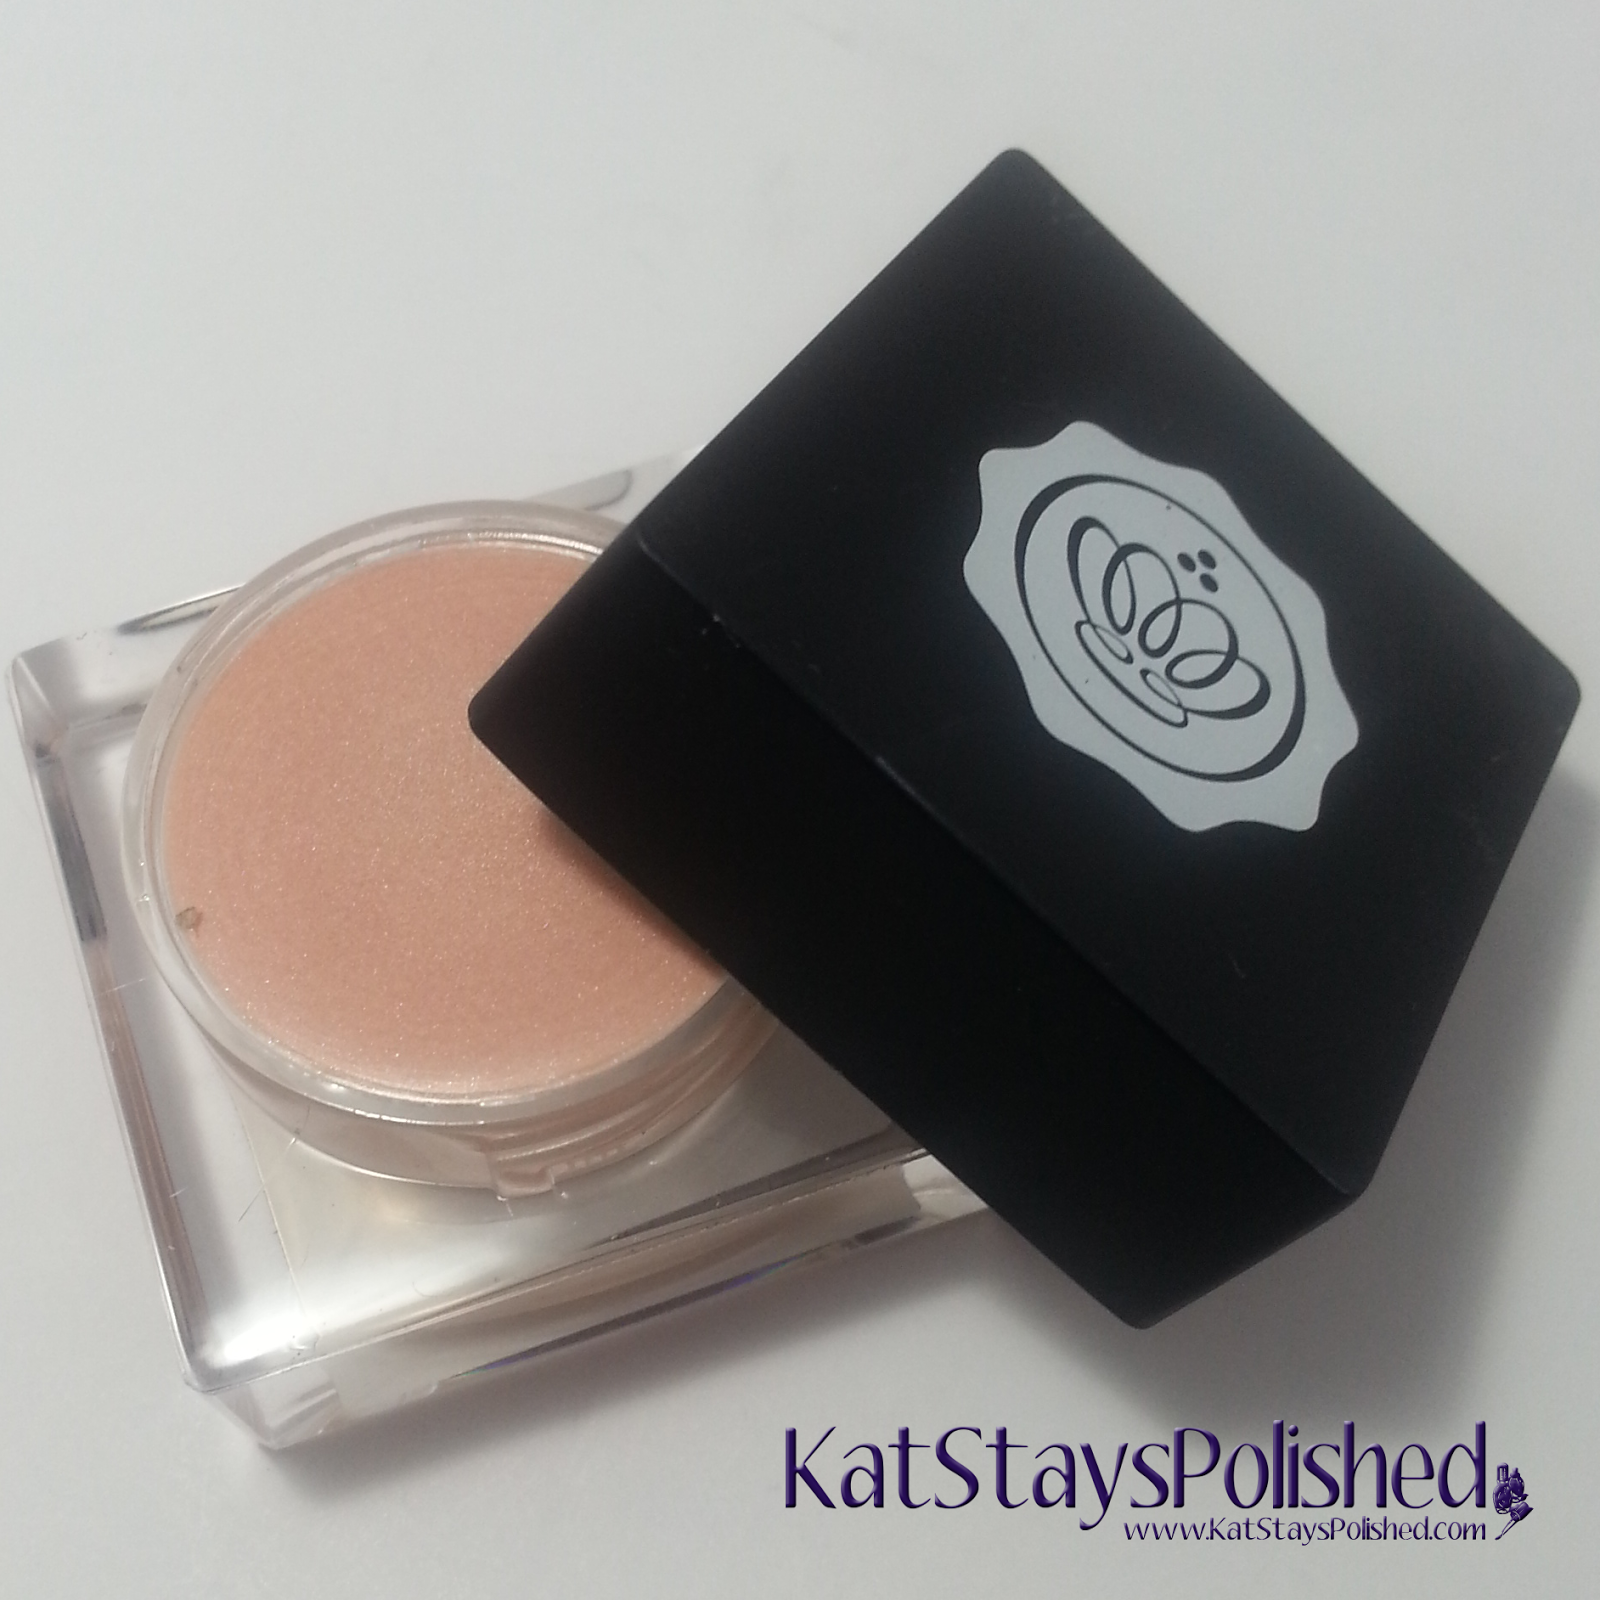 Glossybox - August 2014 - Kryolan for Glossybox Highlighter in Cashmere | Kat Stays Polished